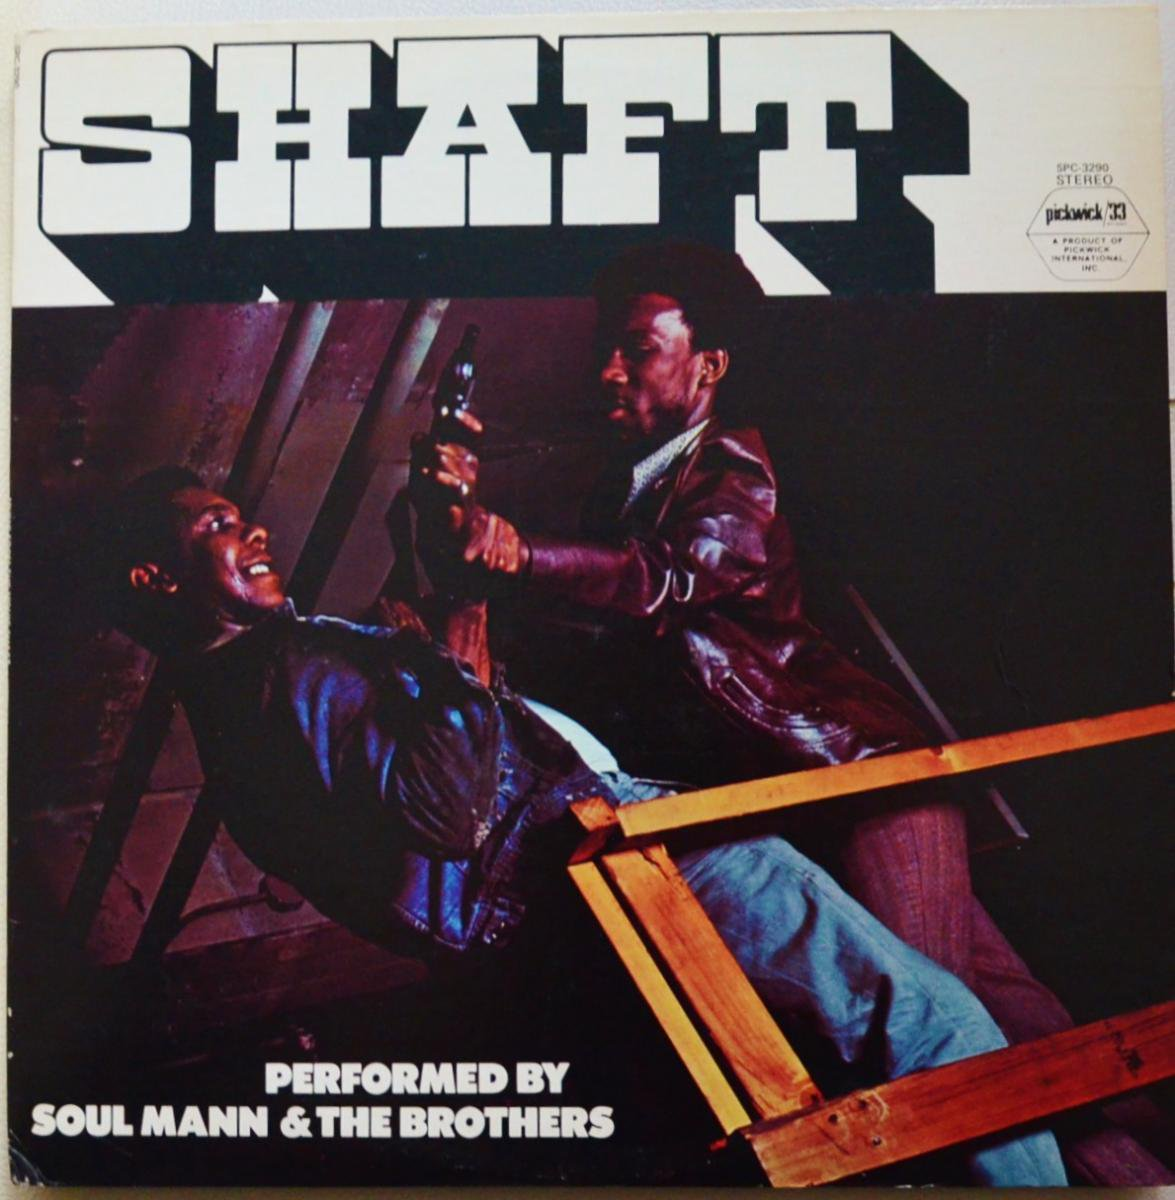 SOUL MANN & THE BROTHERS / SHAFT (LP)